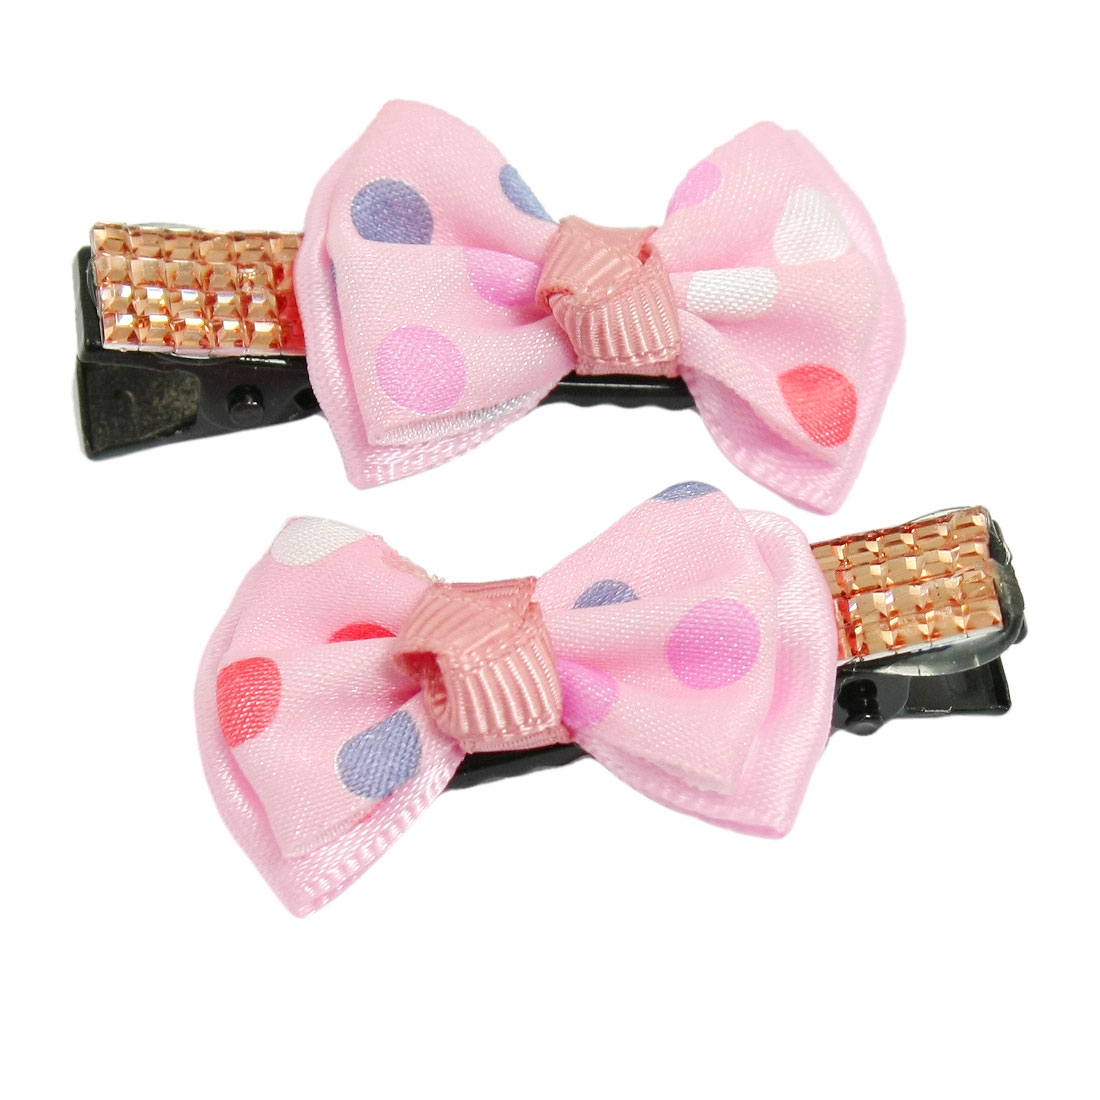 2 Pcs Light Pink Two Layer Bowknot Design Alligator Hair Clips for Girls